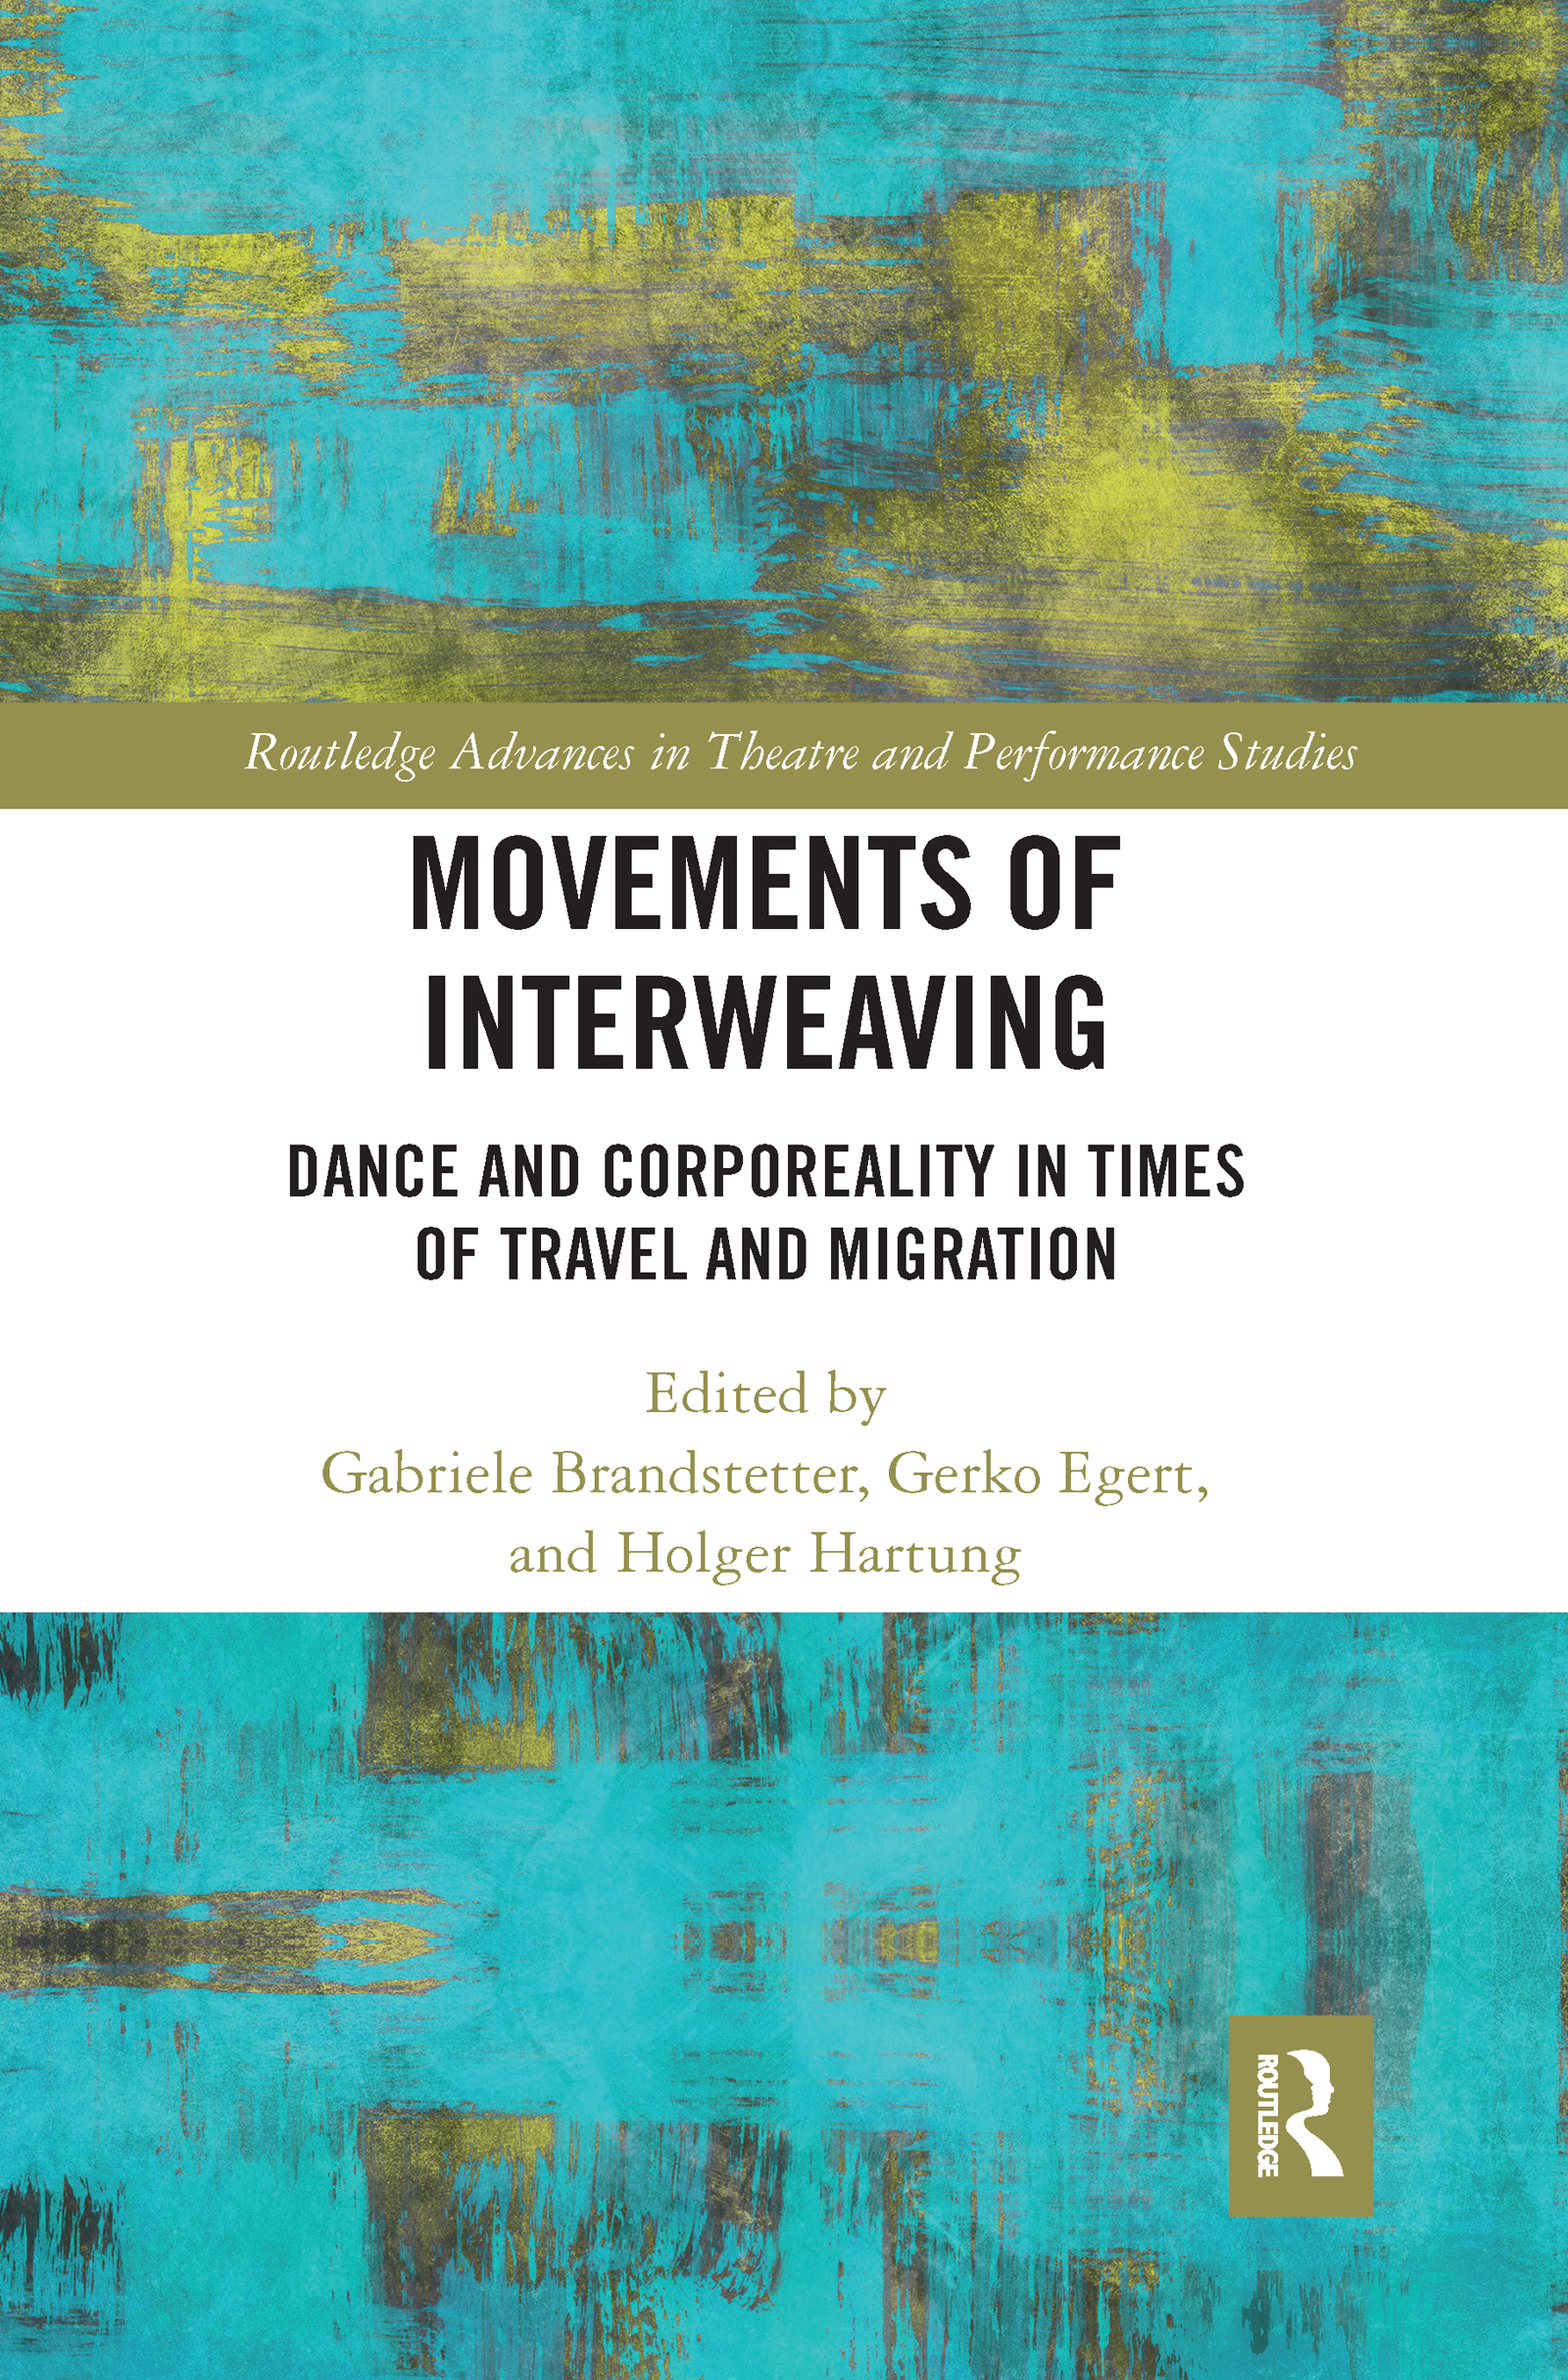 Movements of Interweaving